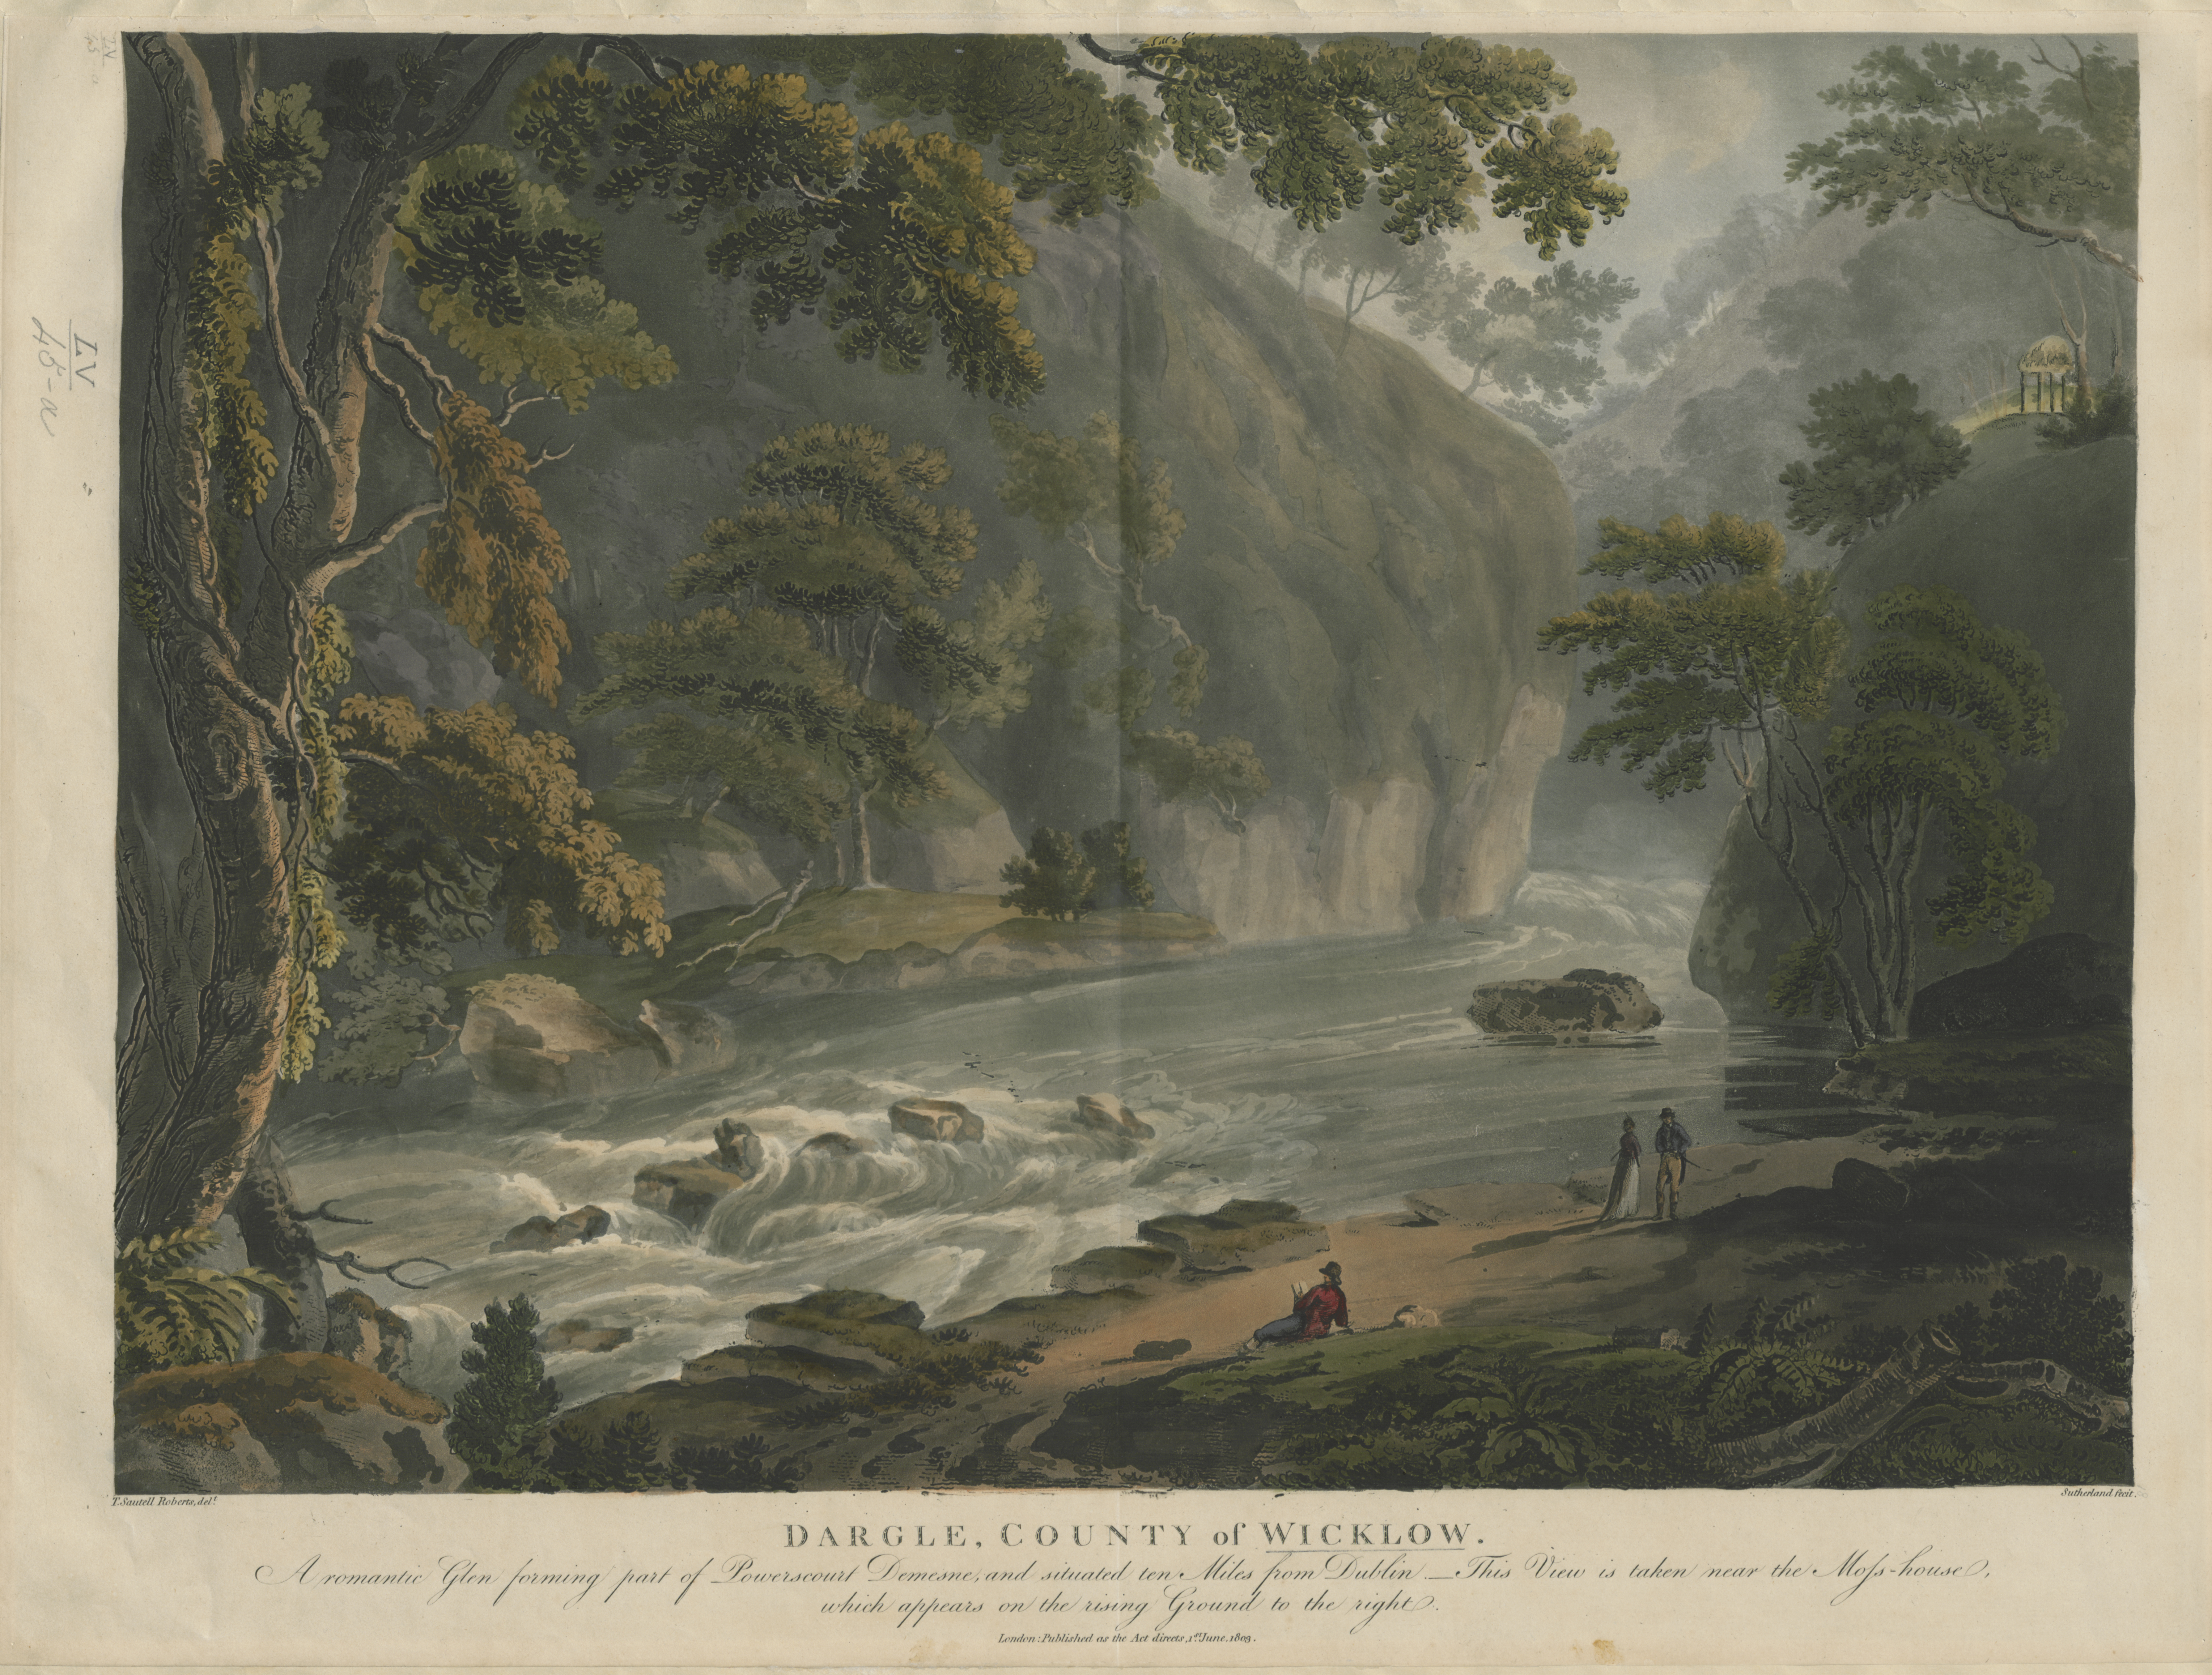 Dargle, County of Wicklow